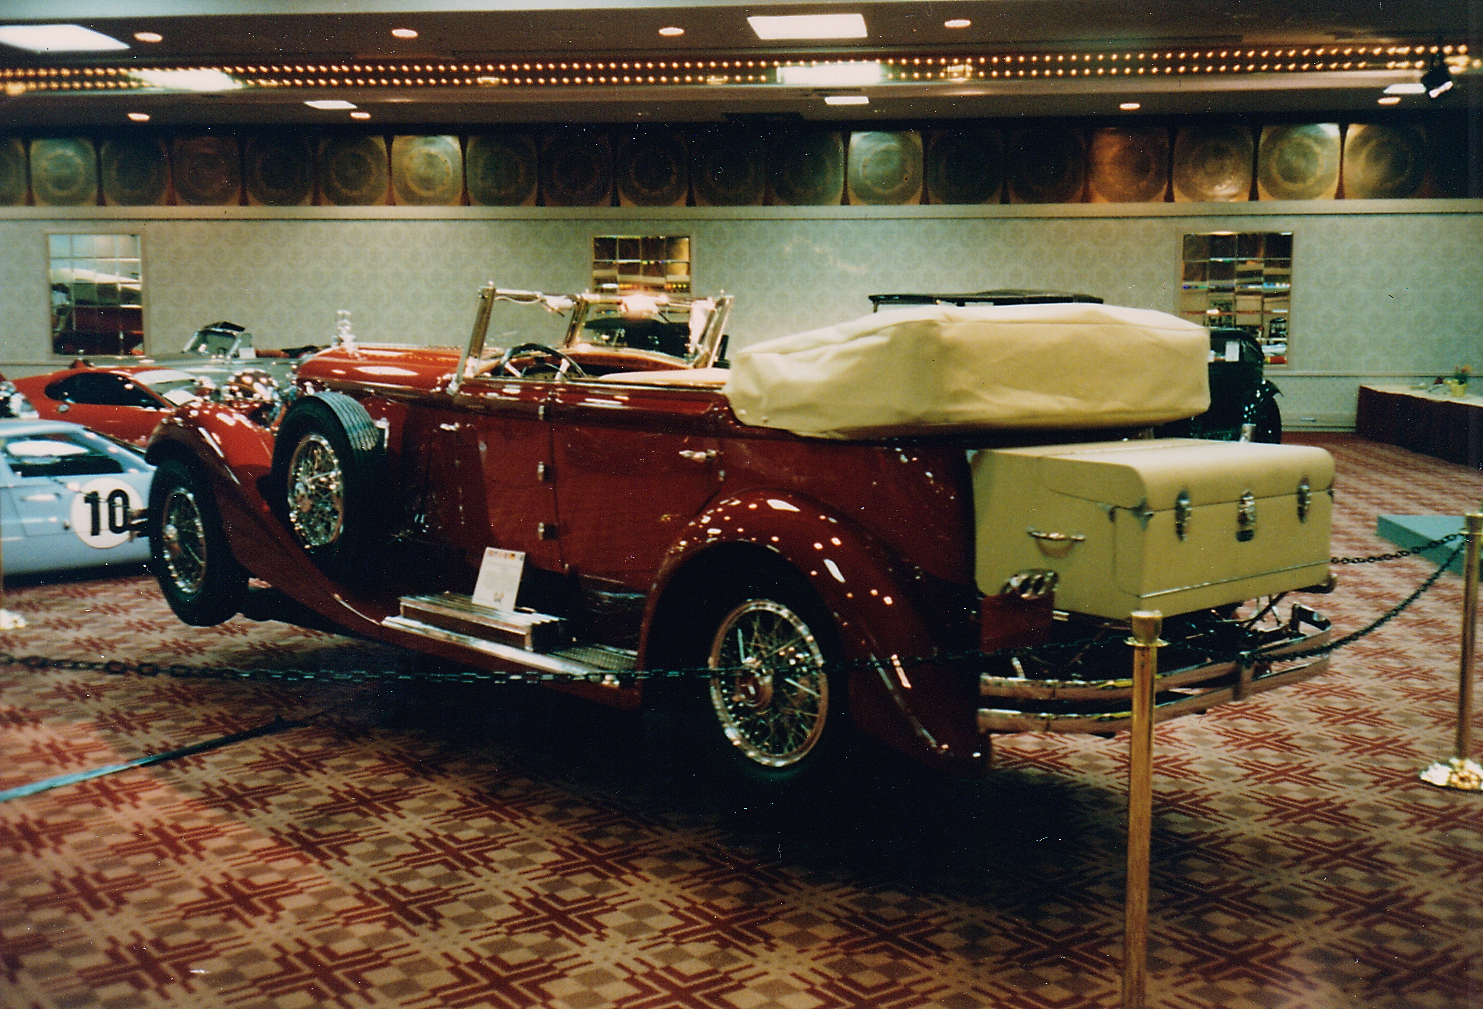 The large red open car looks like a Duesenberg, but I believe it was a Mercedes (check the grille).